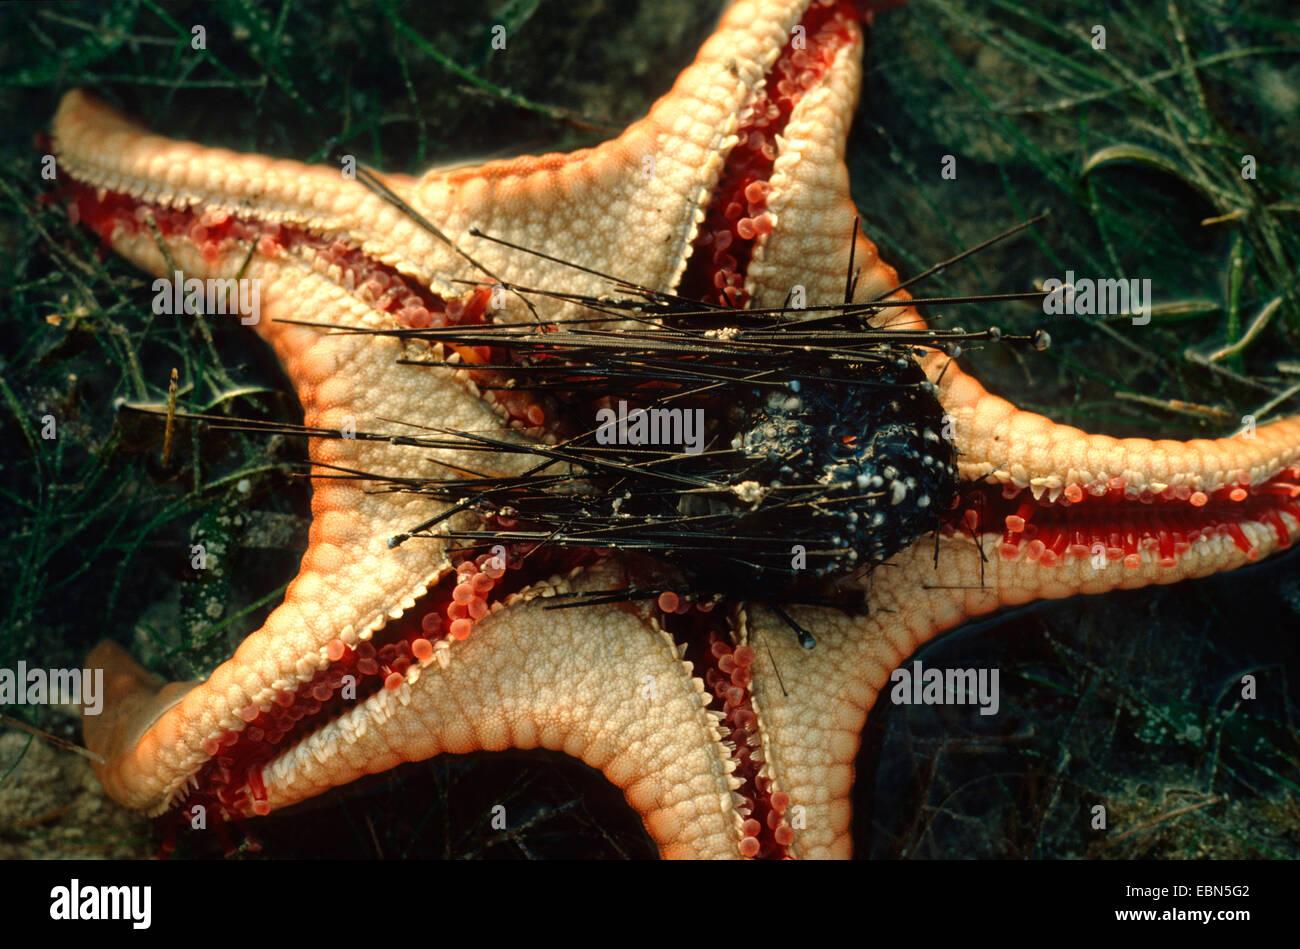 cushion stars (Oreasteridae), underside with the remains of an eaten sea urchin, Indopazifik Stock Photo